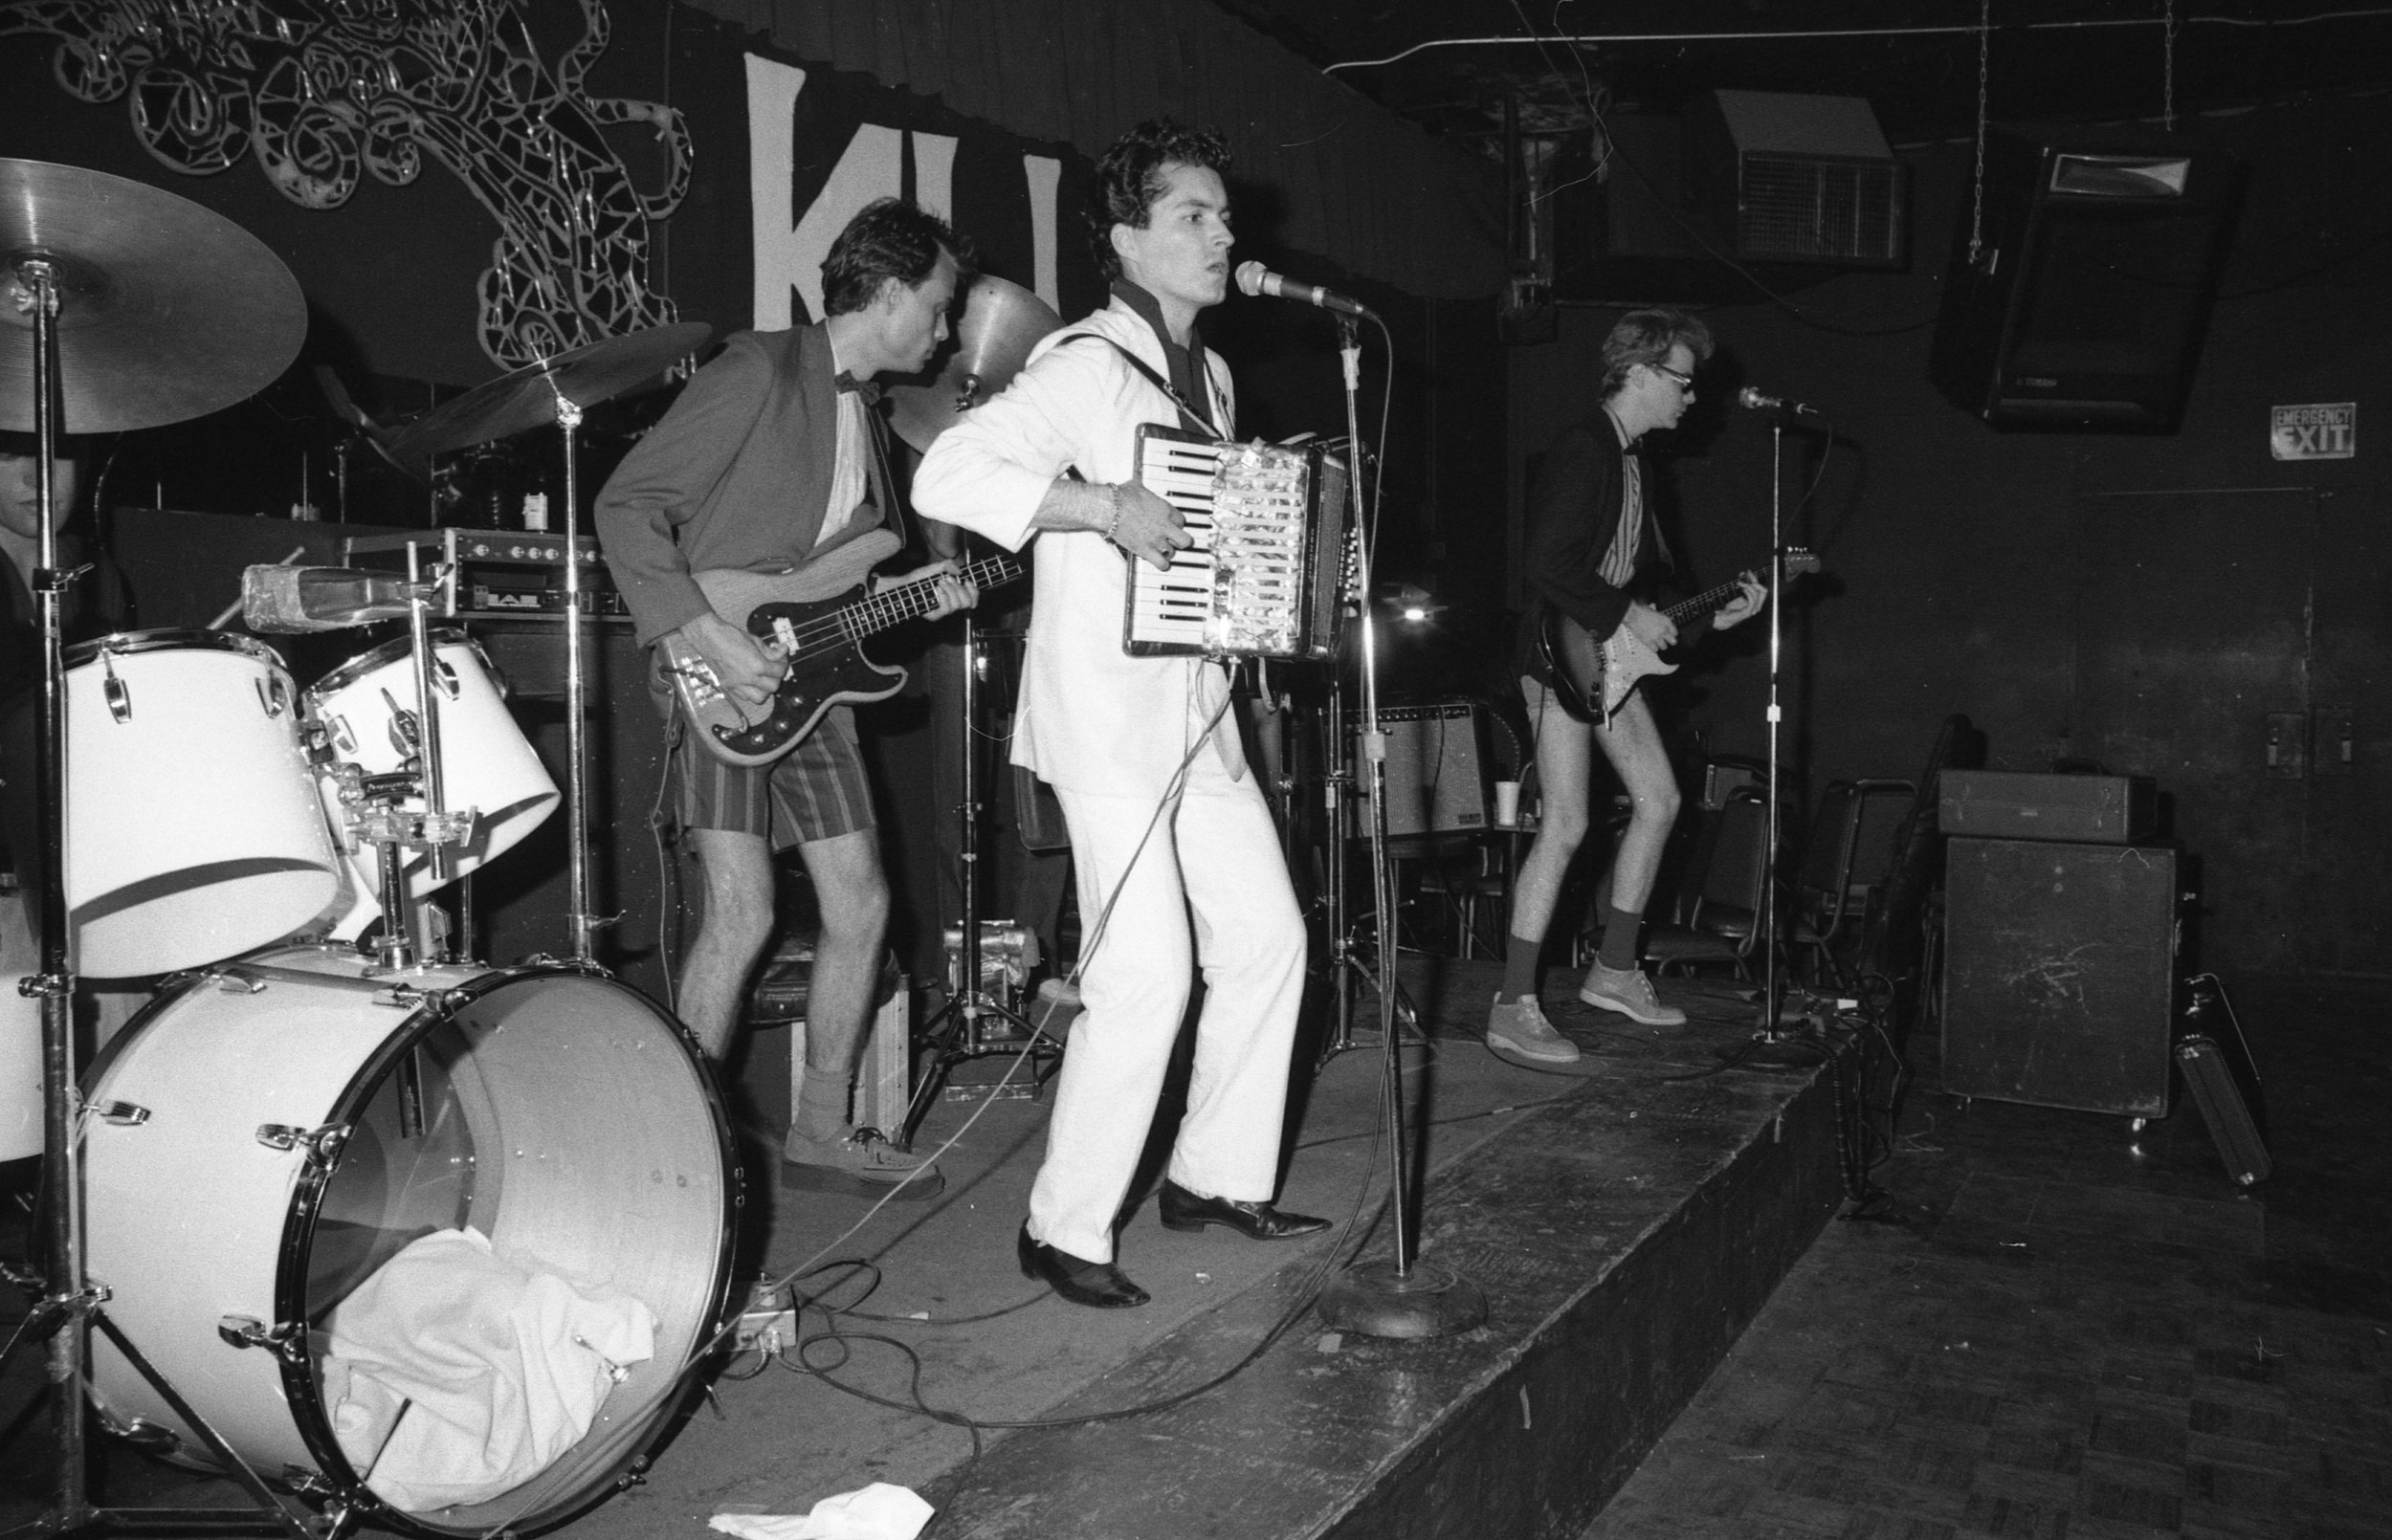 Billy Sheets and Undercover, On Klub, Los Angeles, 1981.